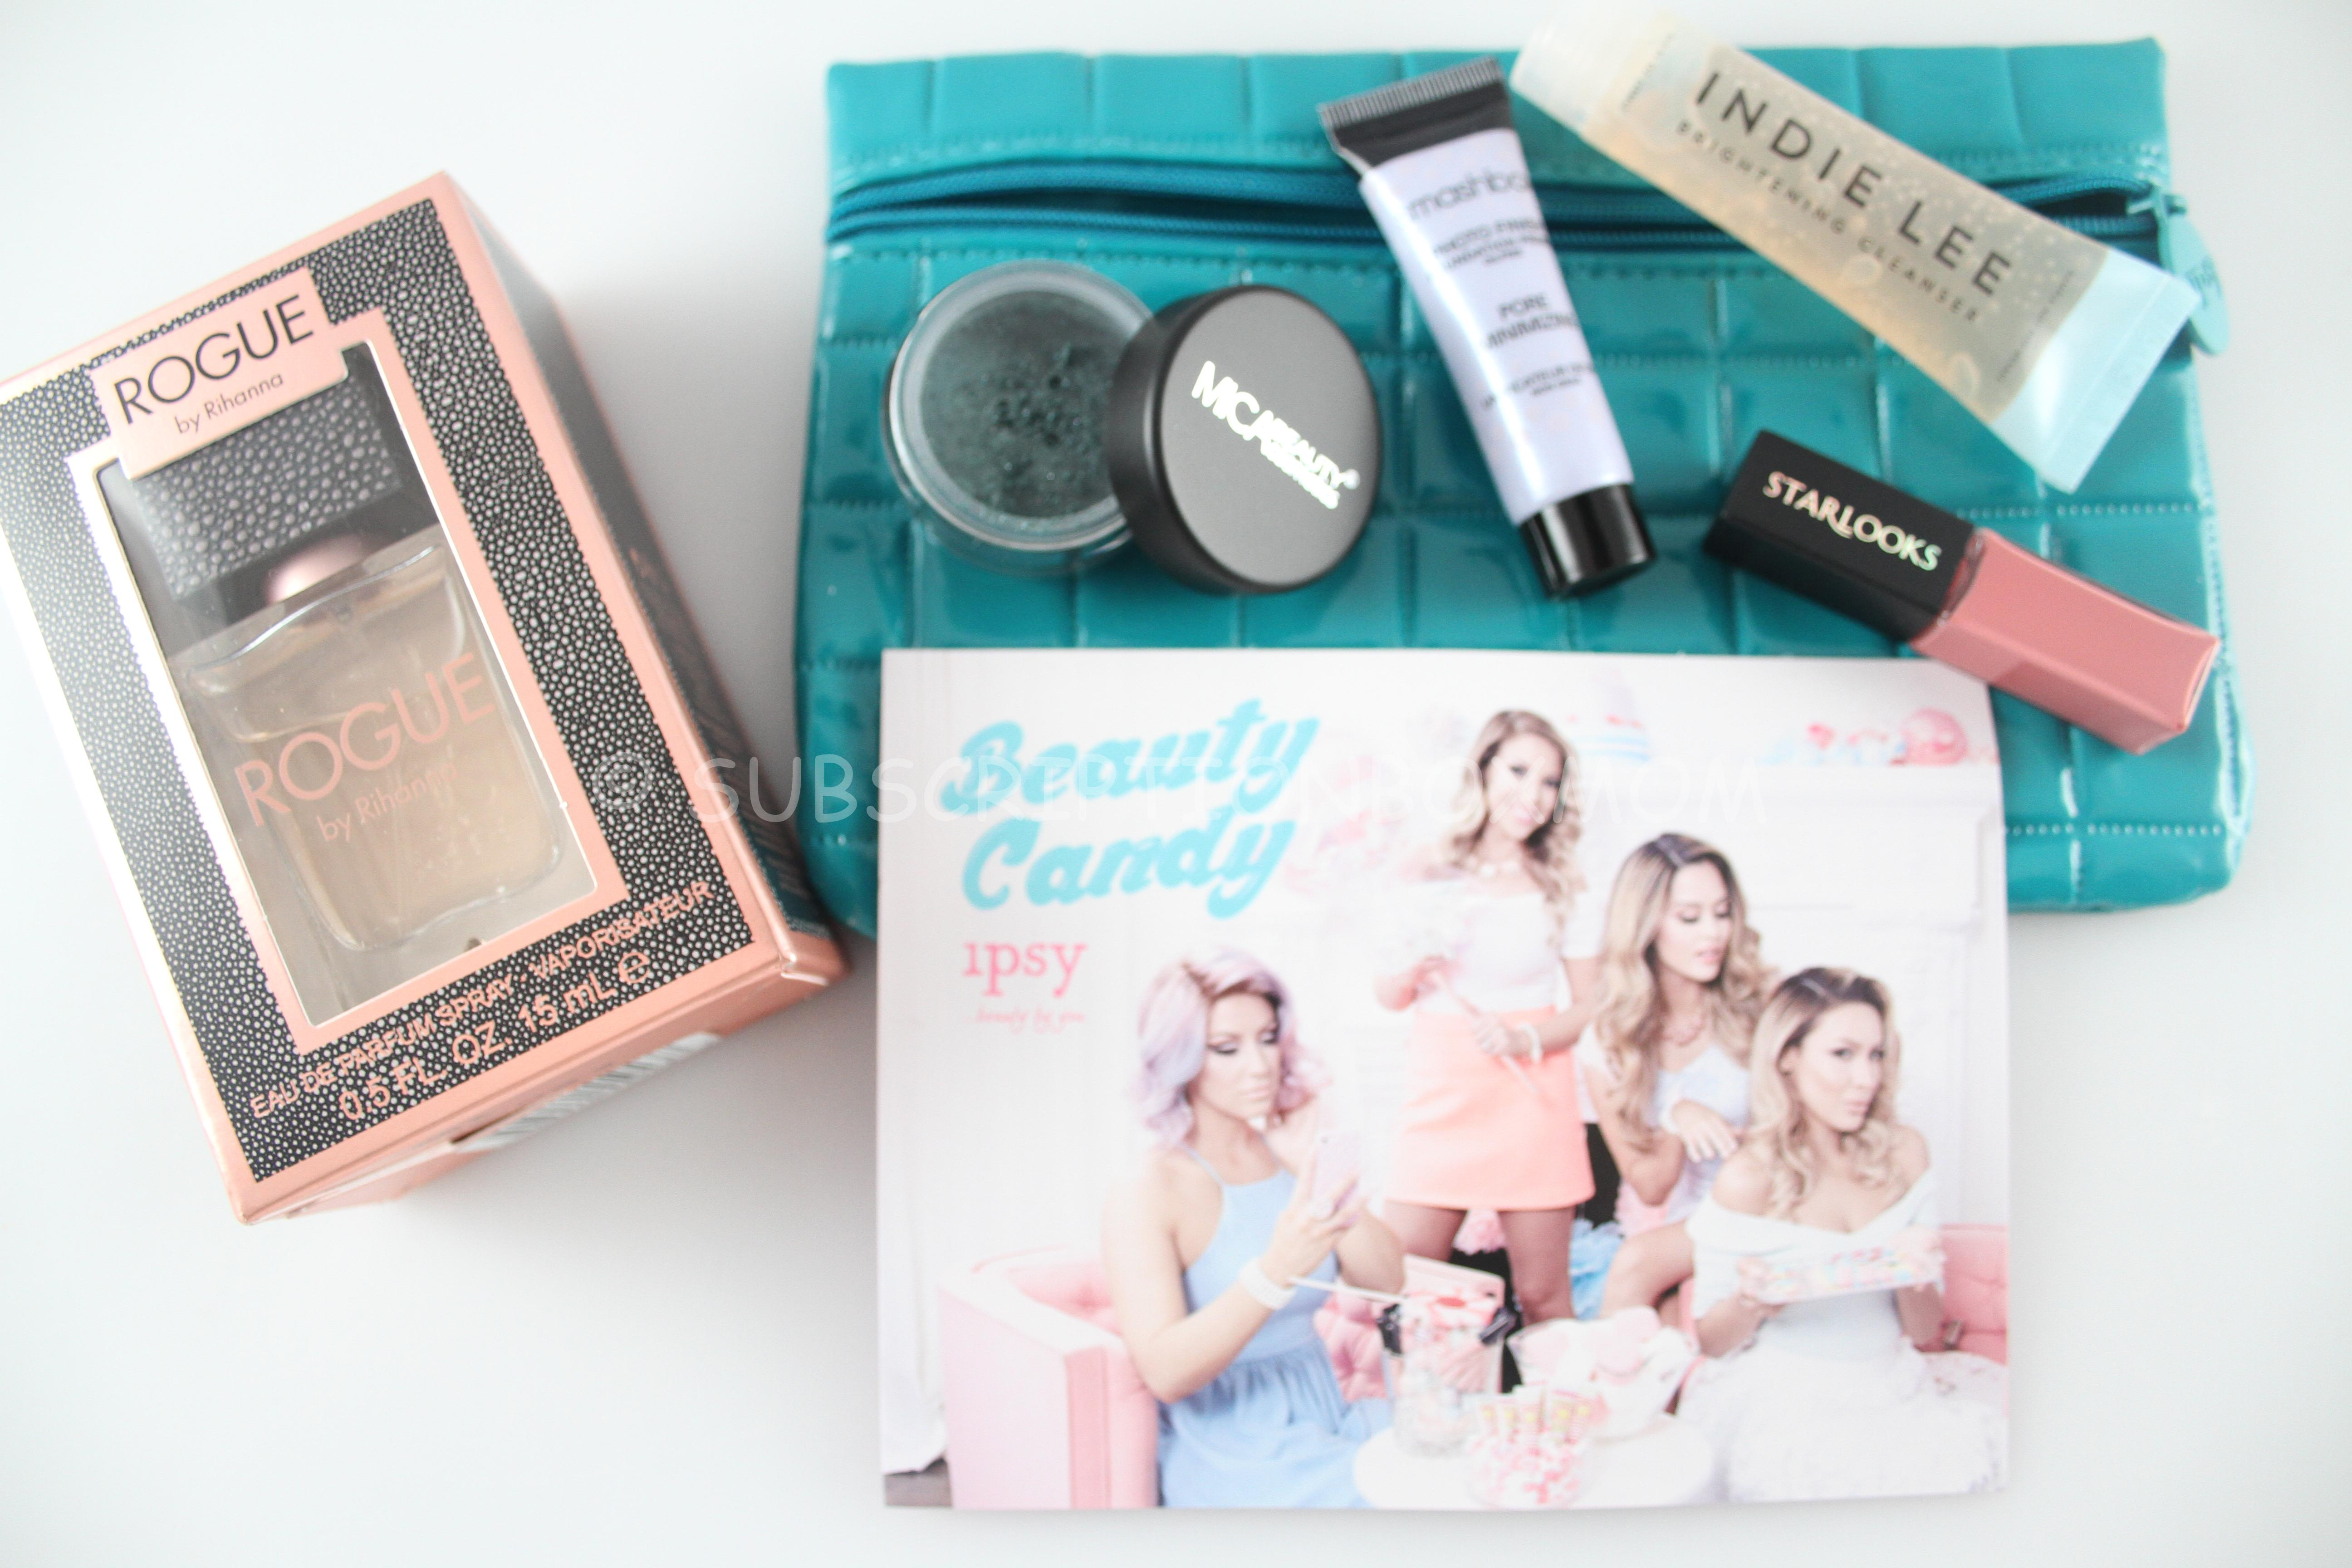 df5718aa3eb Final Thought  The total value of this bag was  44.69. I love getting a  travel version of the primer and cleanser. The lip gloss is a great color  and the ...